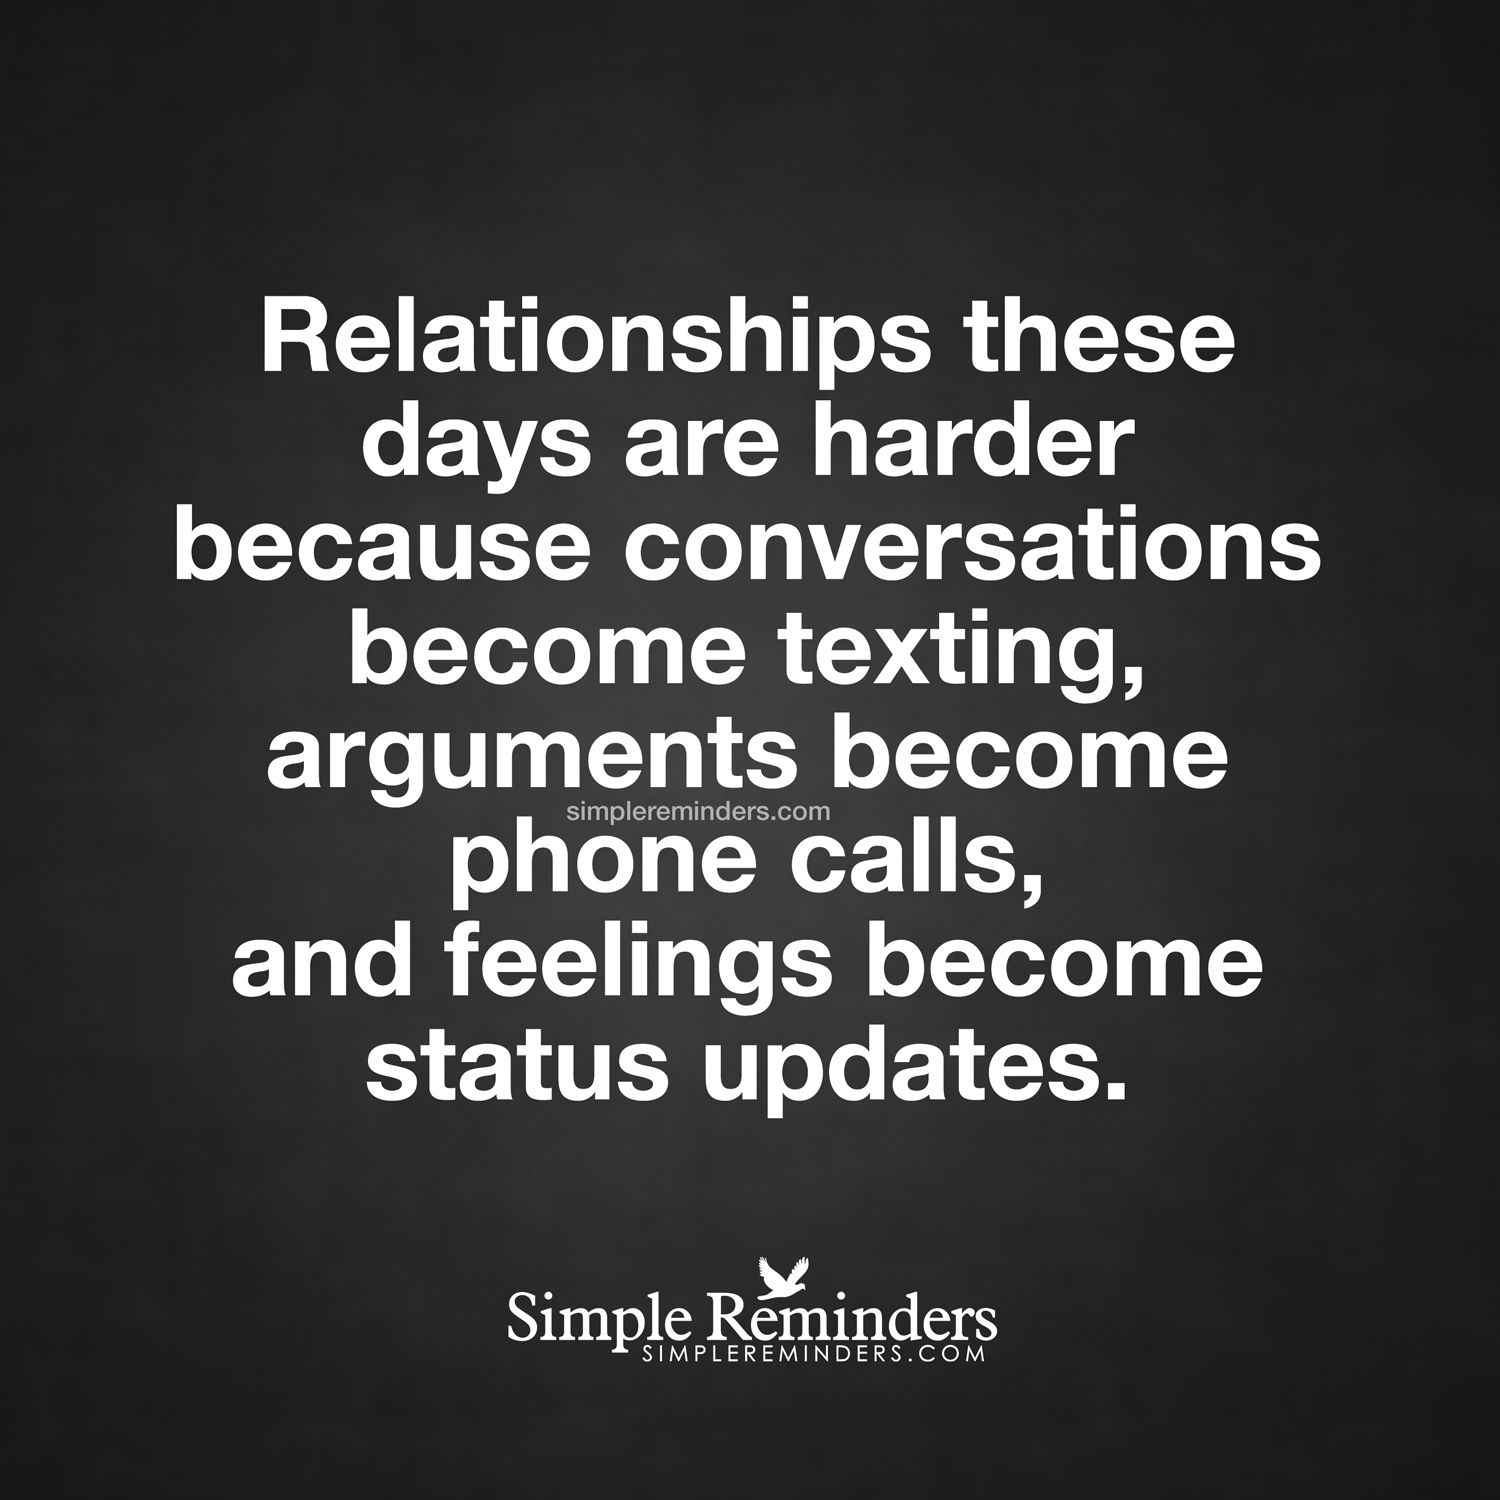 When does Dating become a Relationship